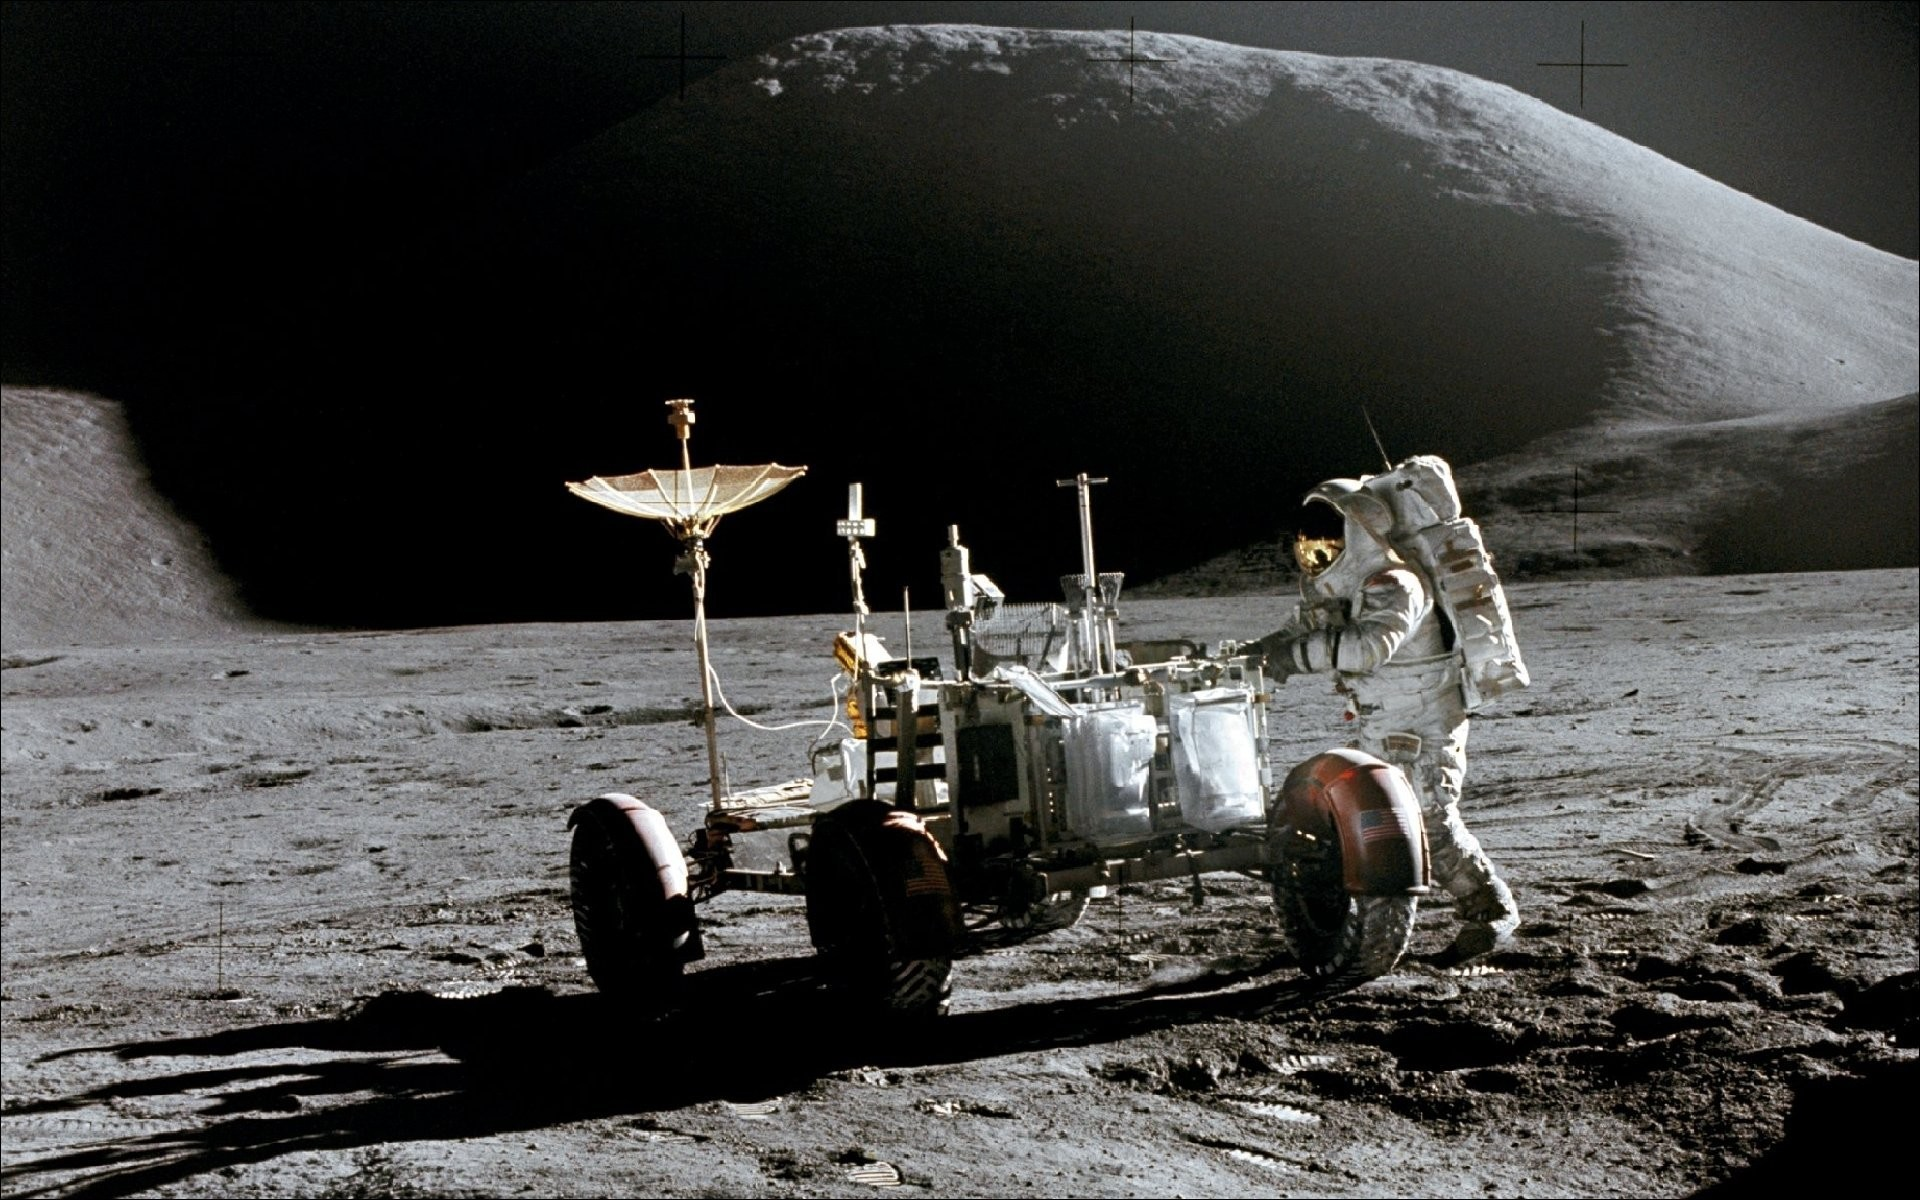 Astronaut on the moon wallpaper 65 images - Nasa space wallpaper 1920x1080 ...